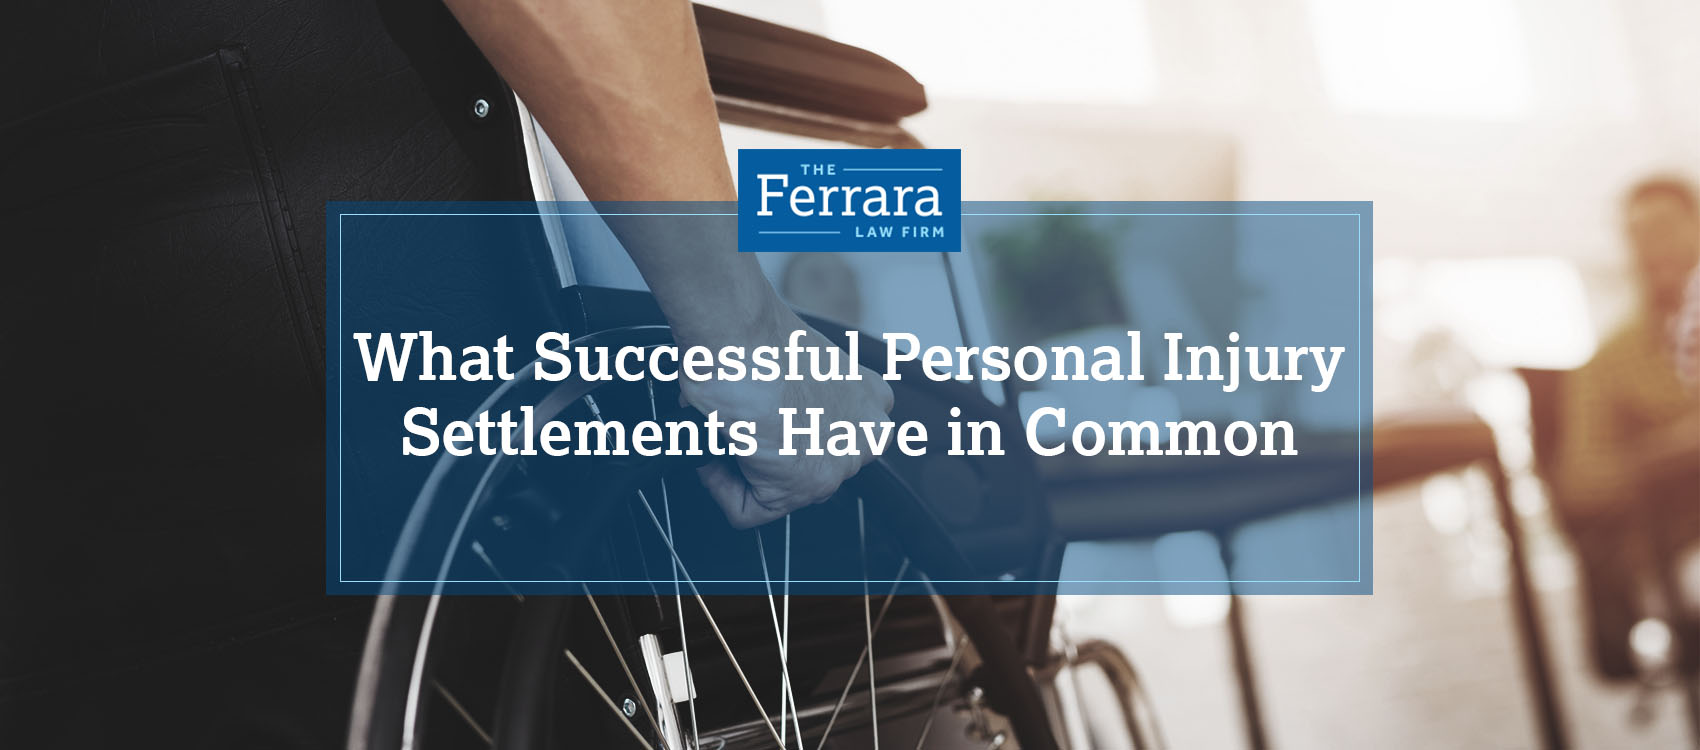 What Successful Personal Injury Settlements Have In Common